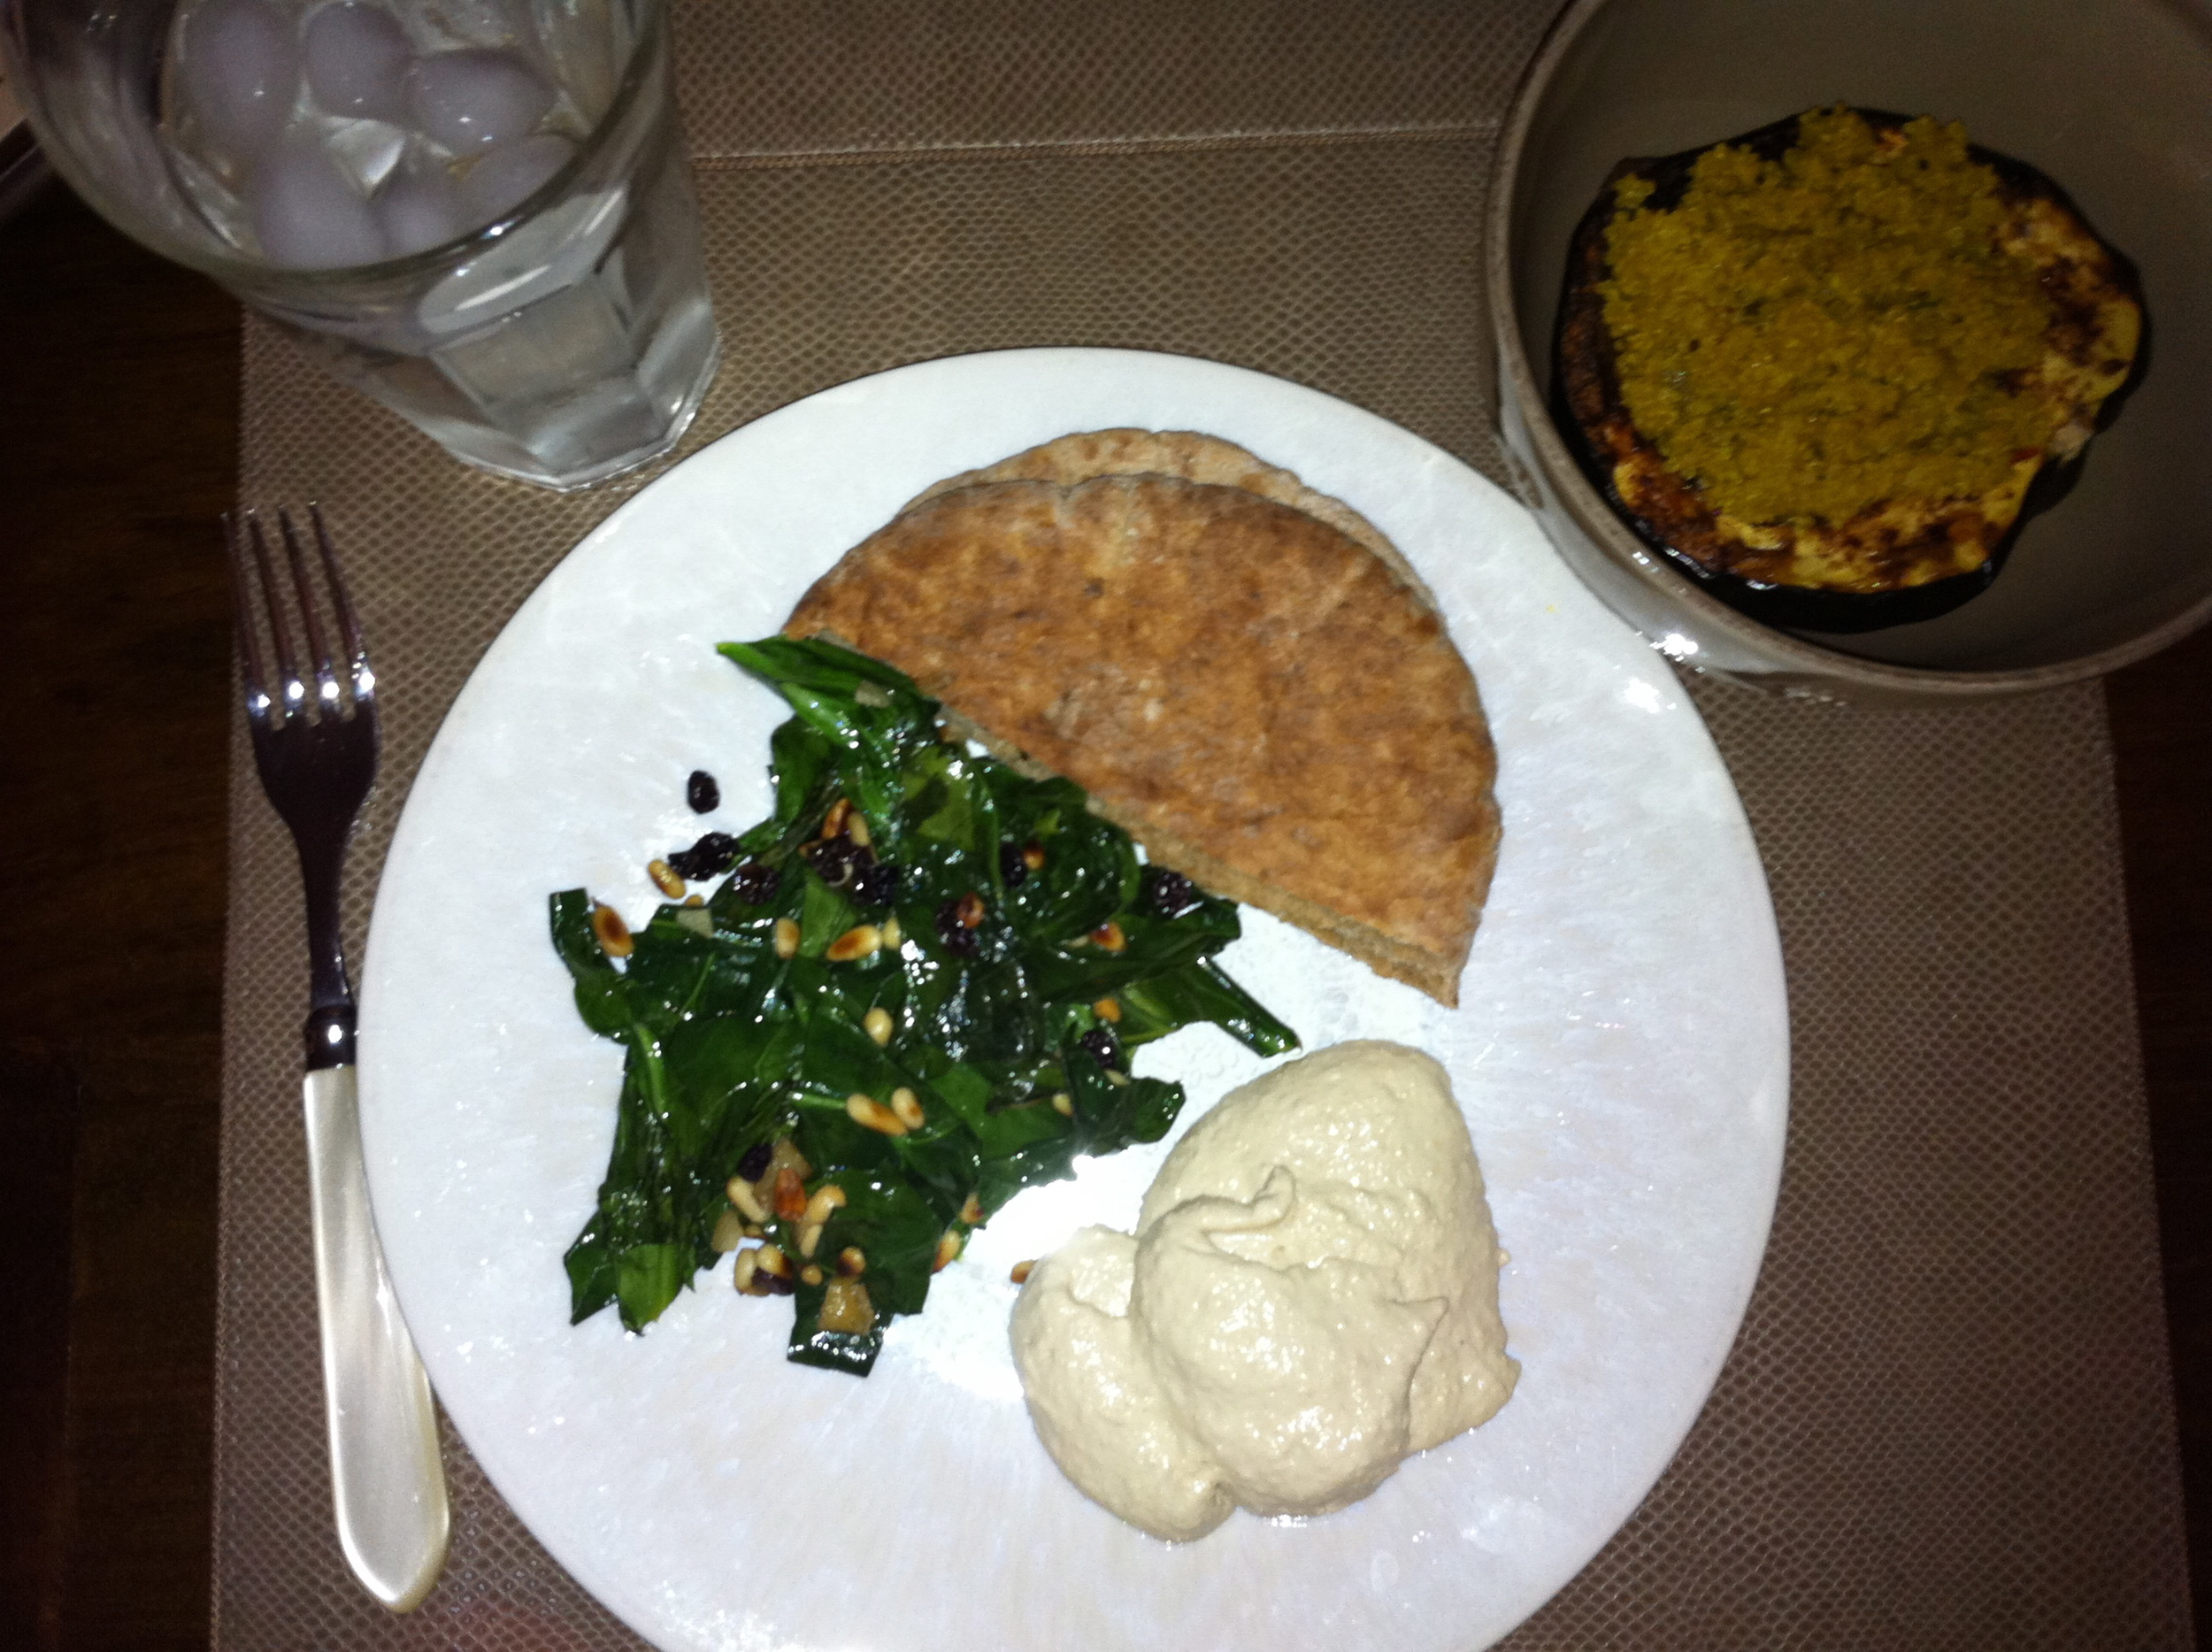 I served the quinoa and squash with hummus, whole wheat pita, and sauteed collard greens with pine nuts and currants.